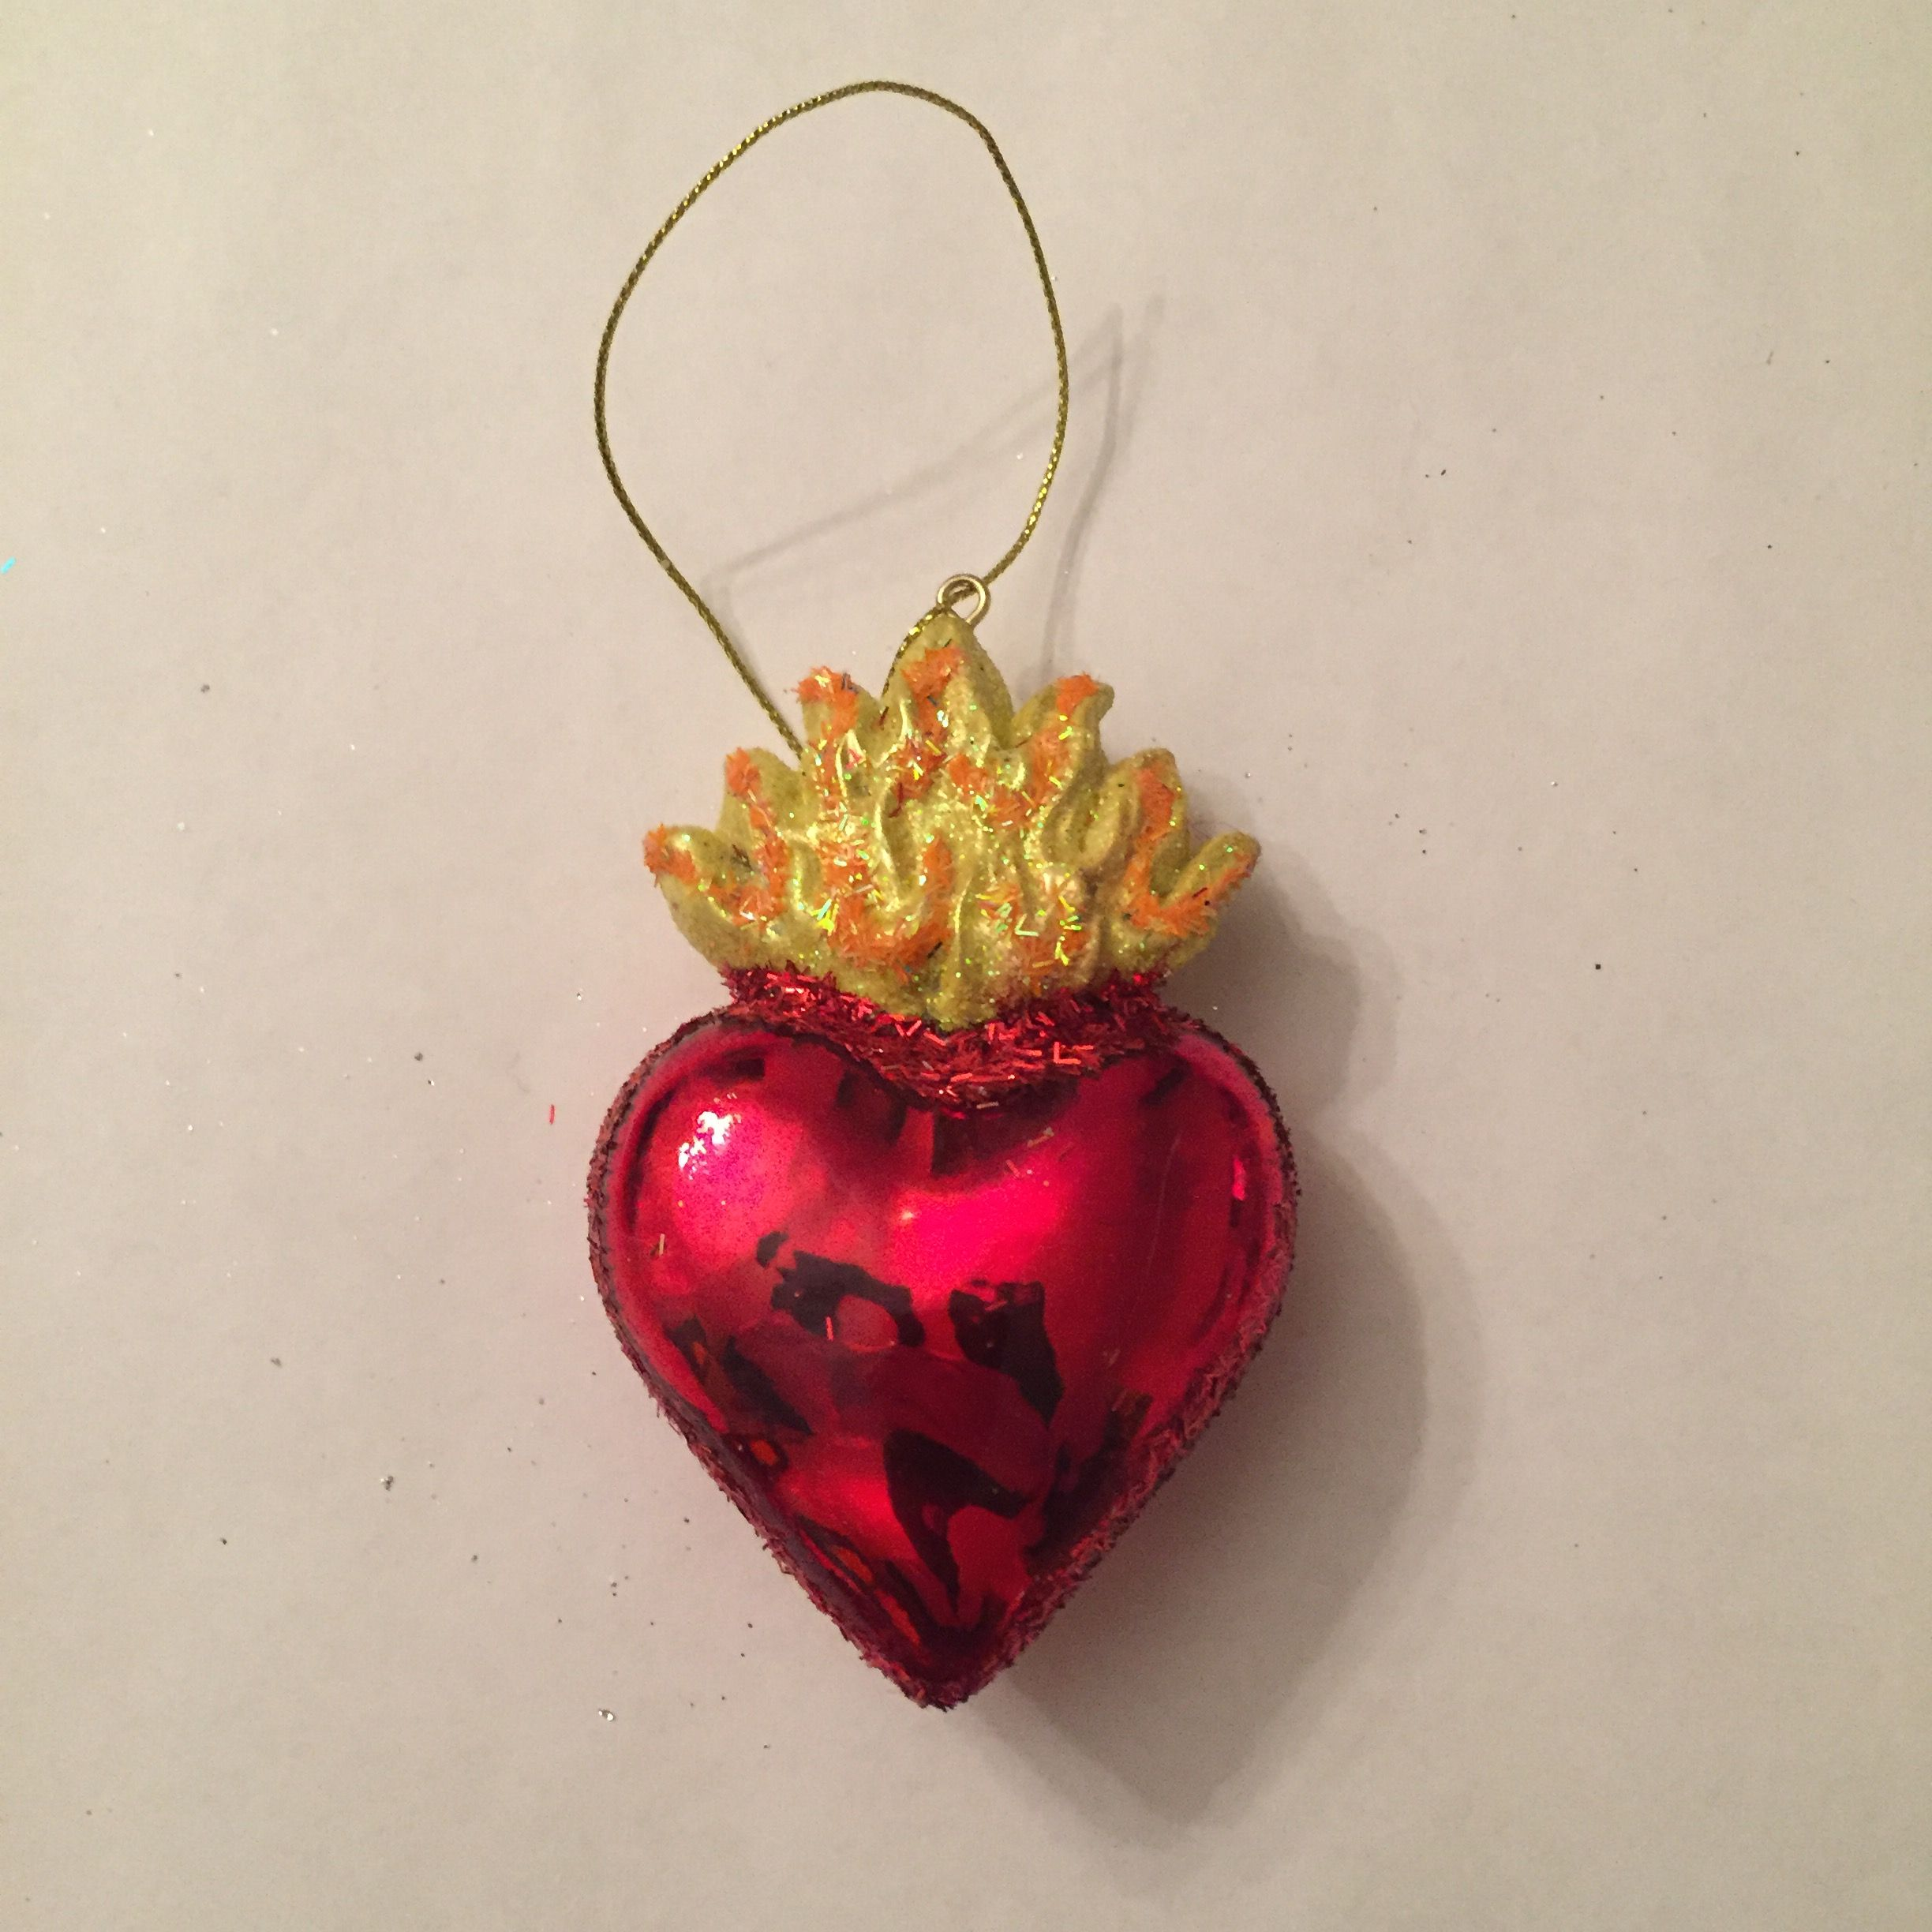 red heart shaped ornaments resin plastic 2 ornaments bought